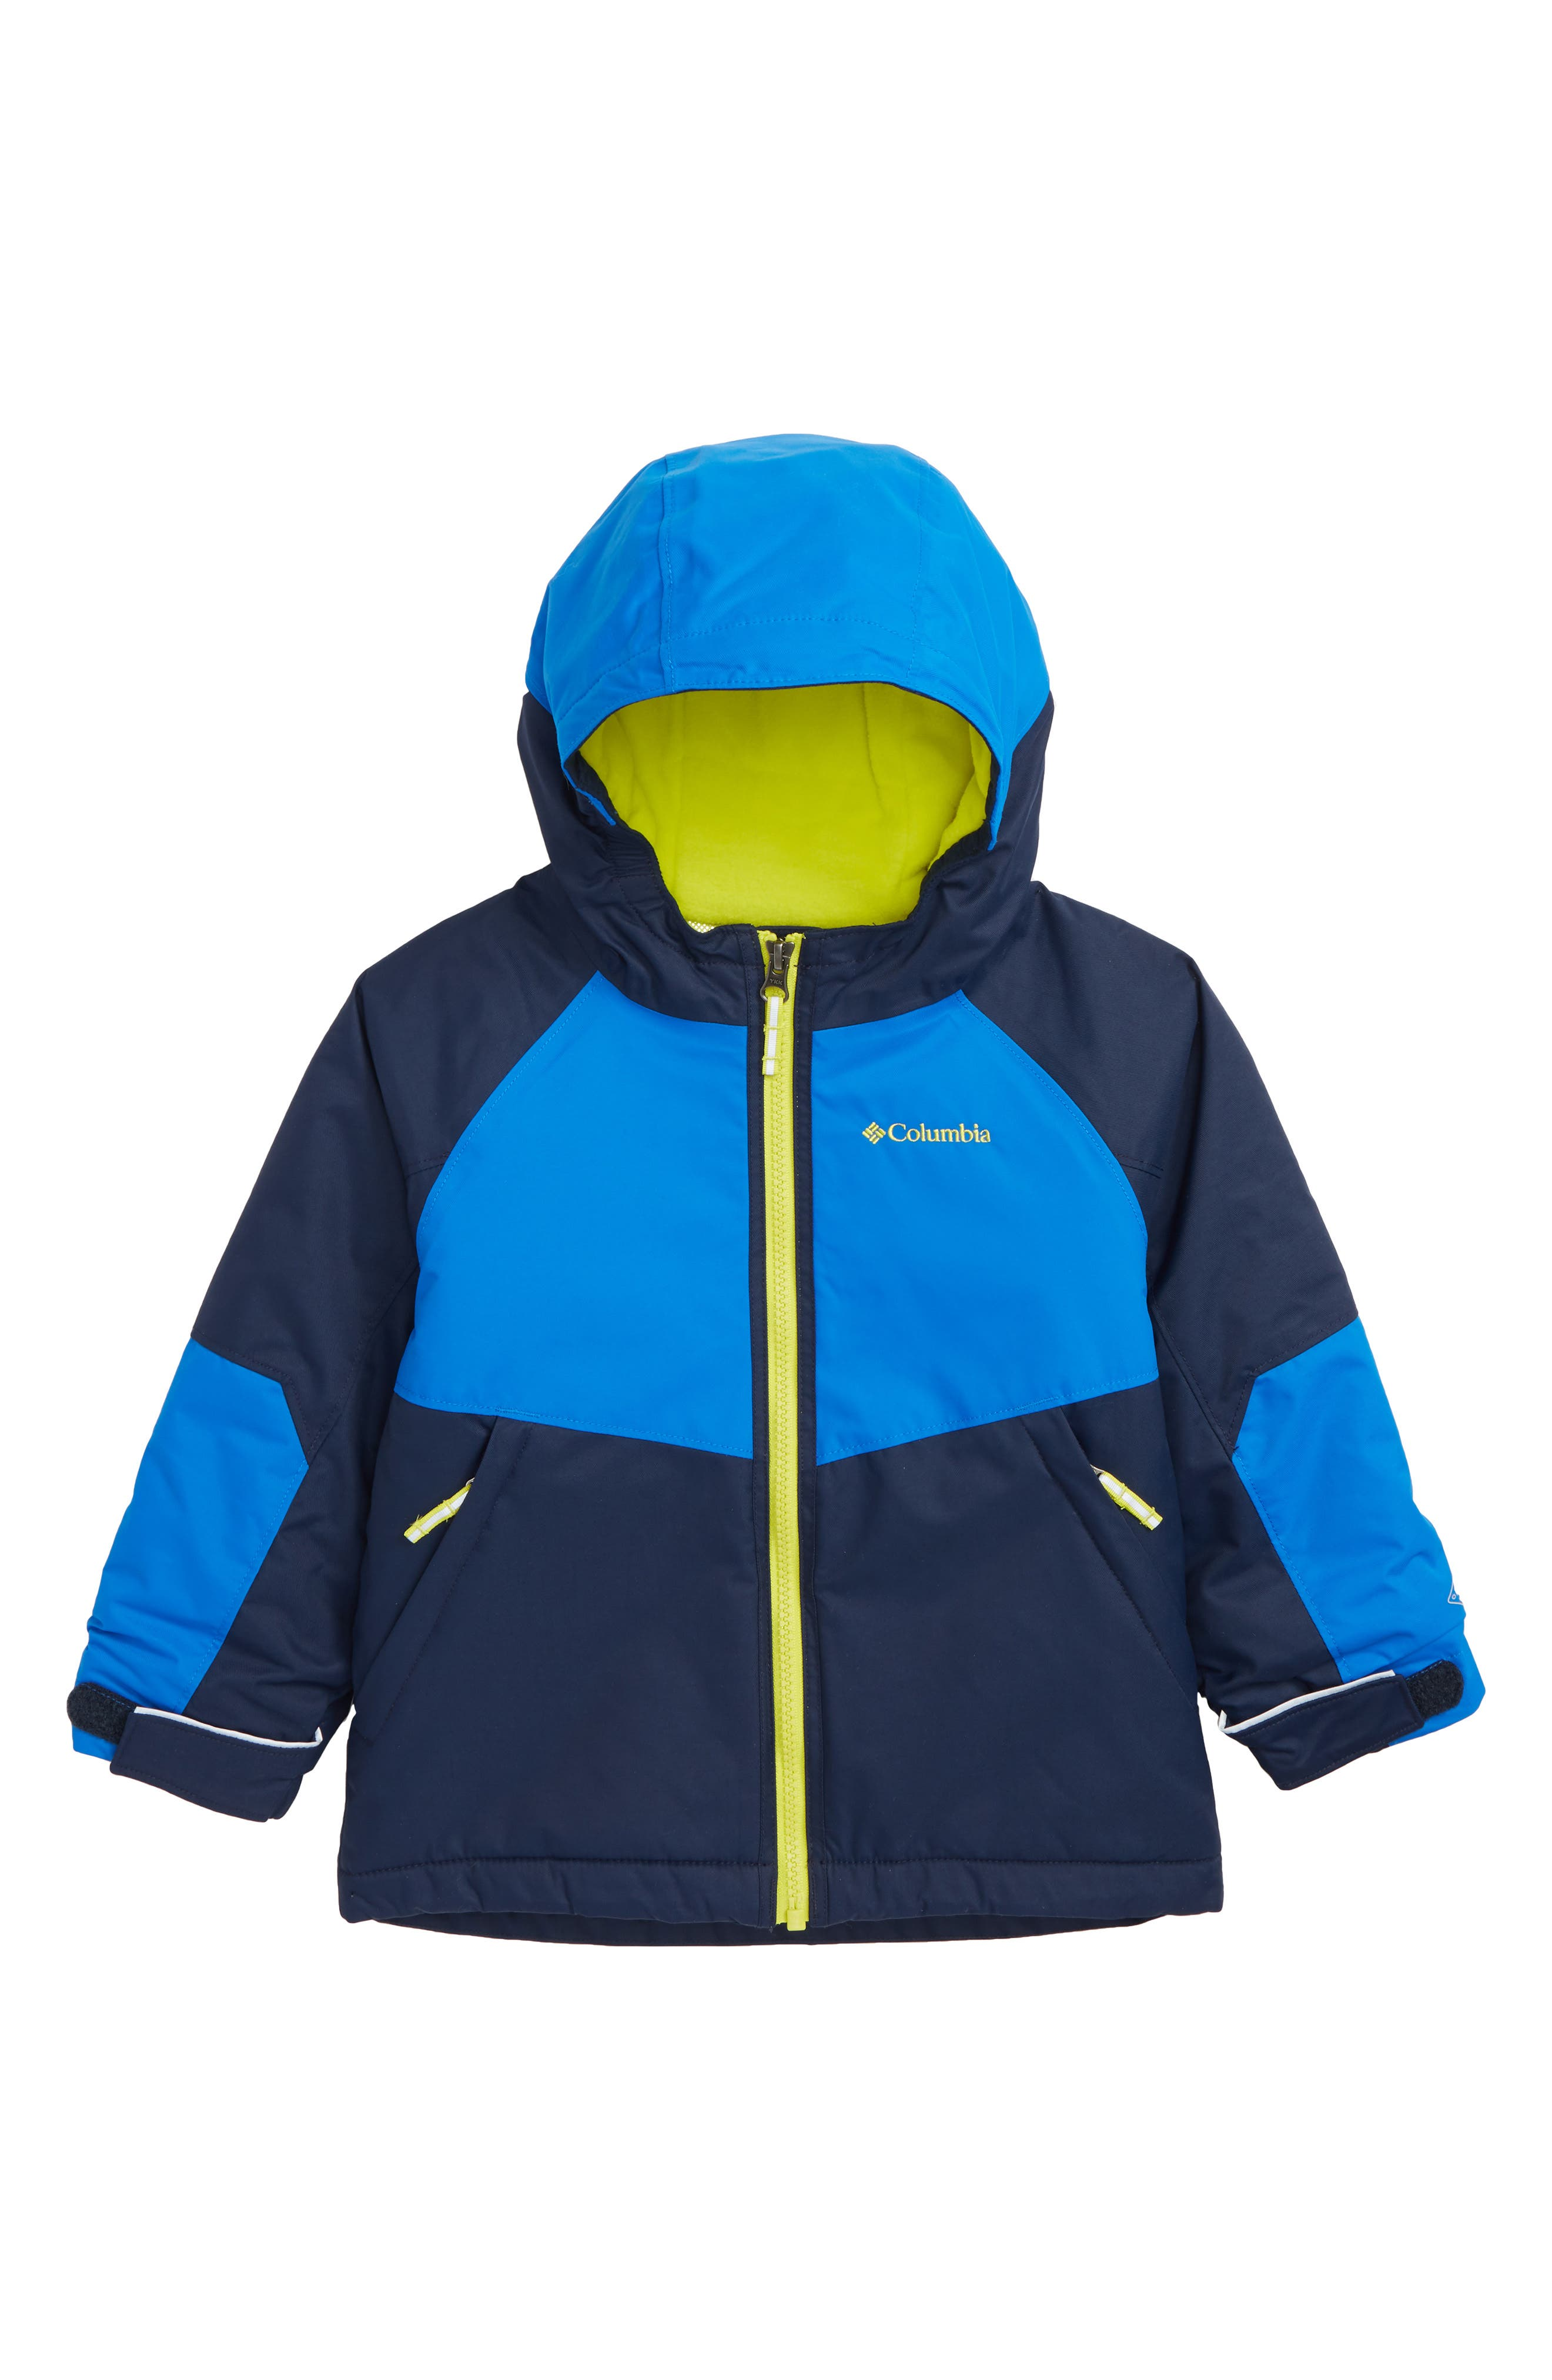 Toddler Boys Columbia Alpine Action Omni Heat Waterproof Hooded Jacket Size 4T  Blue